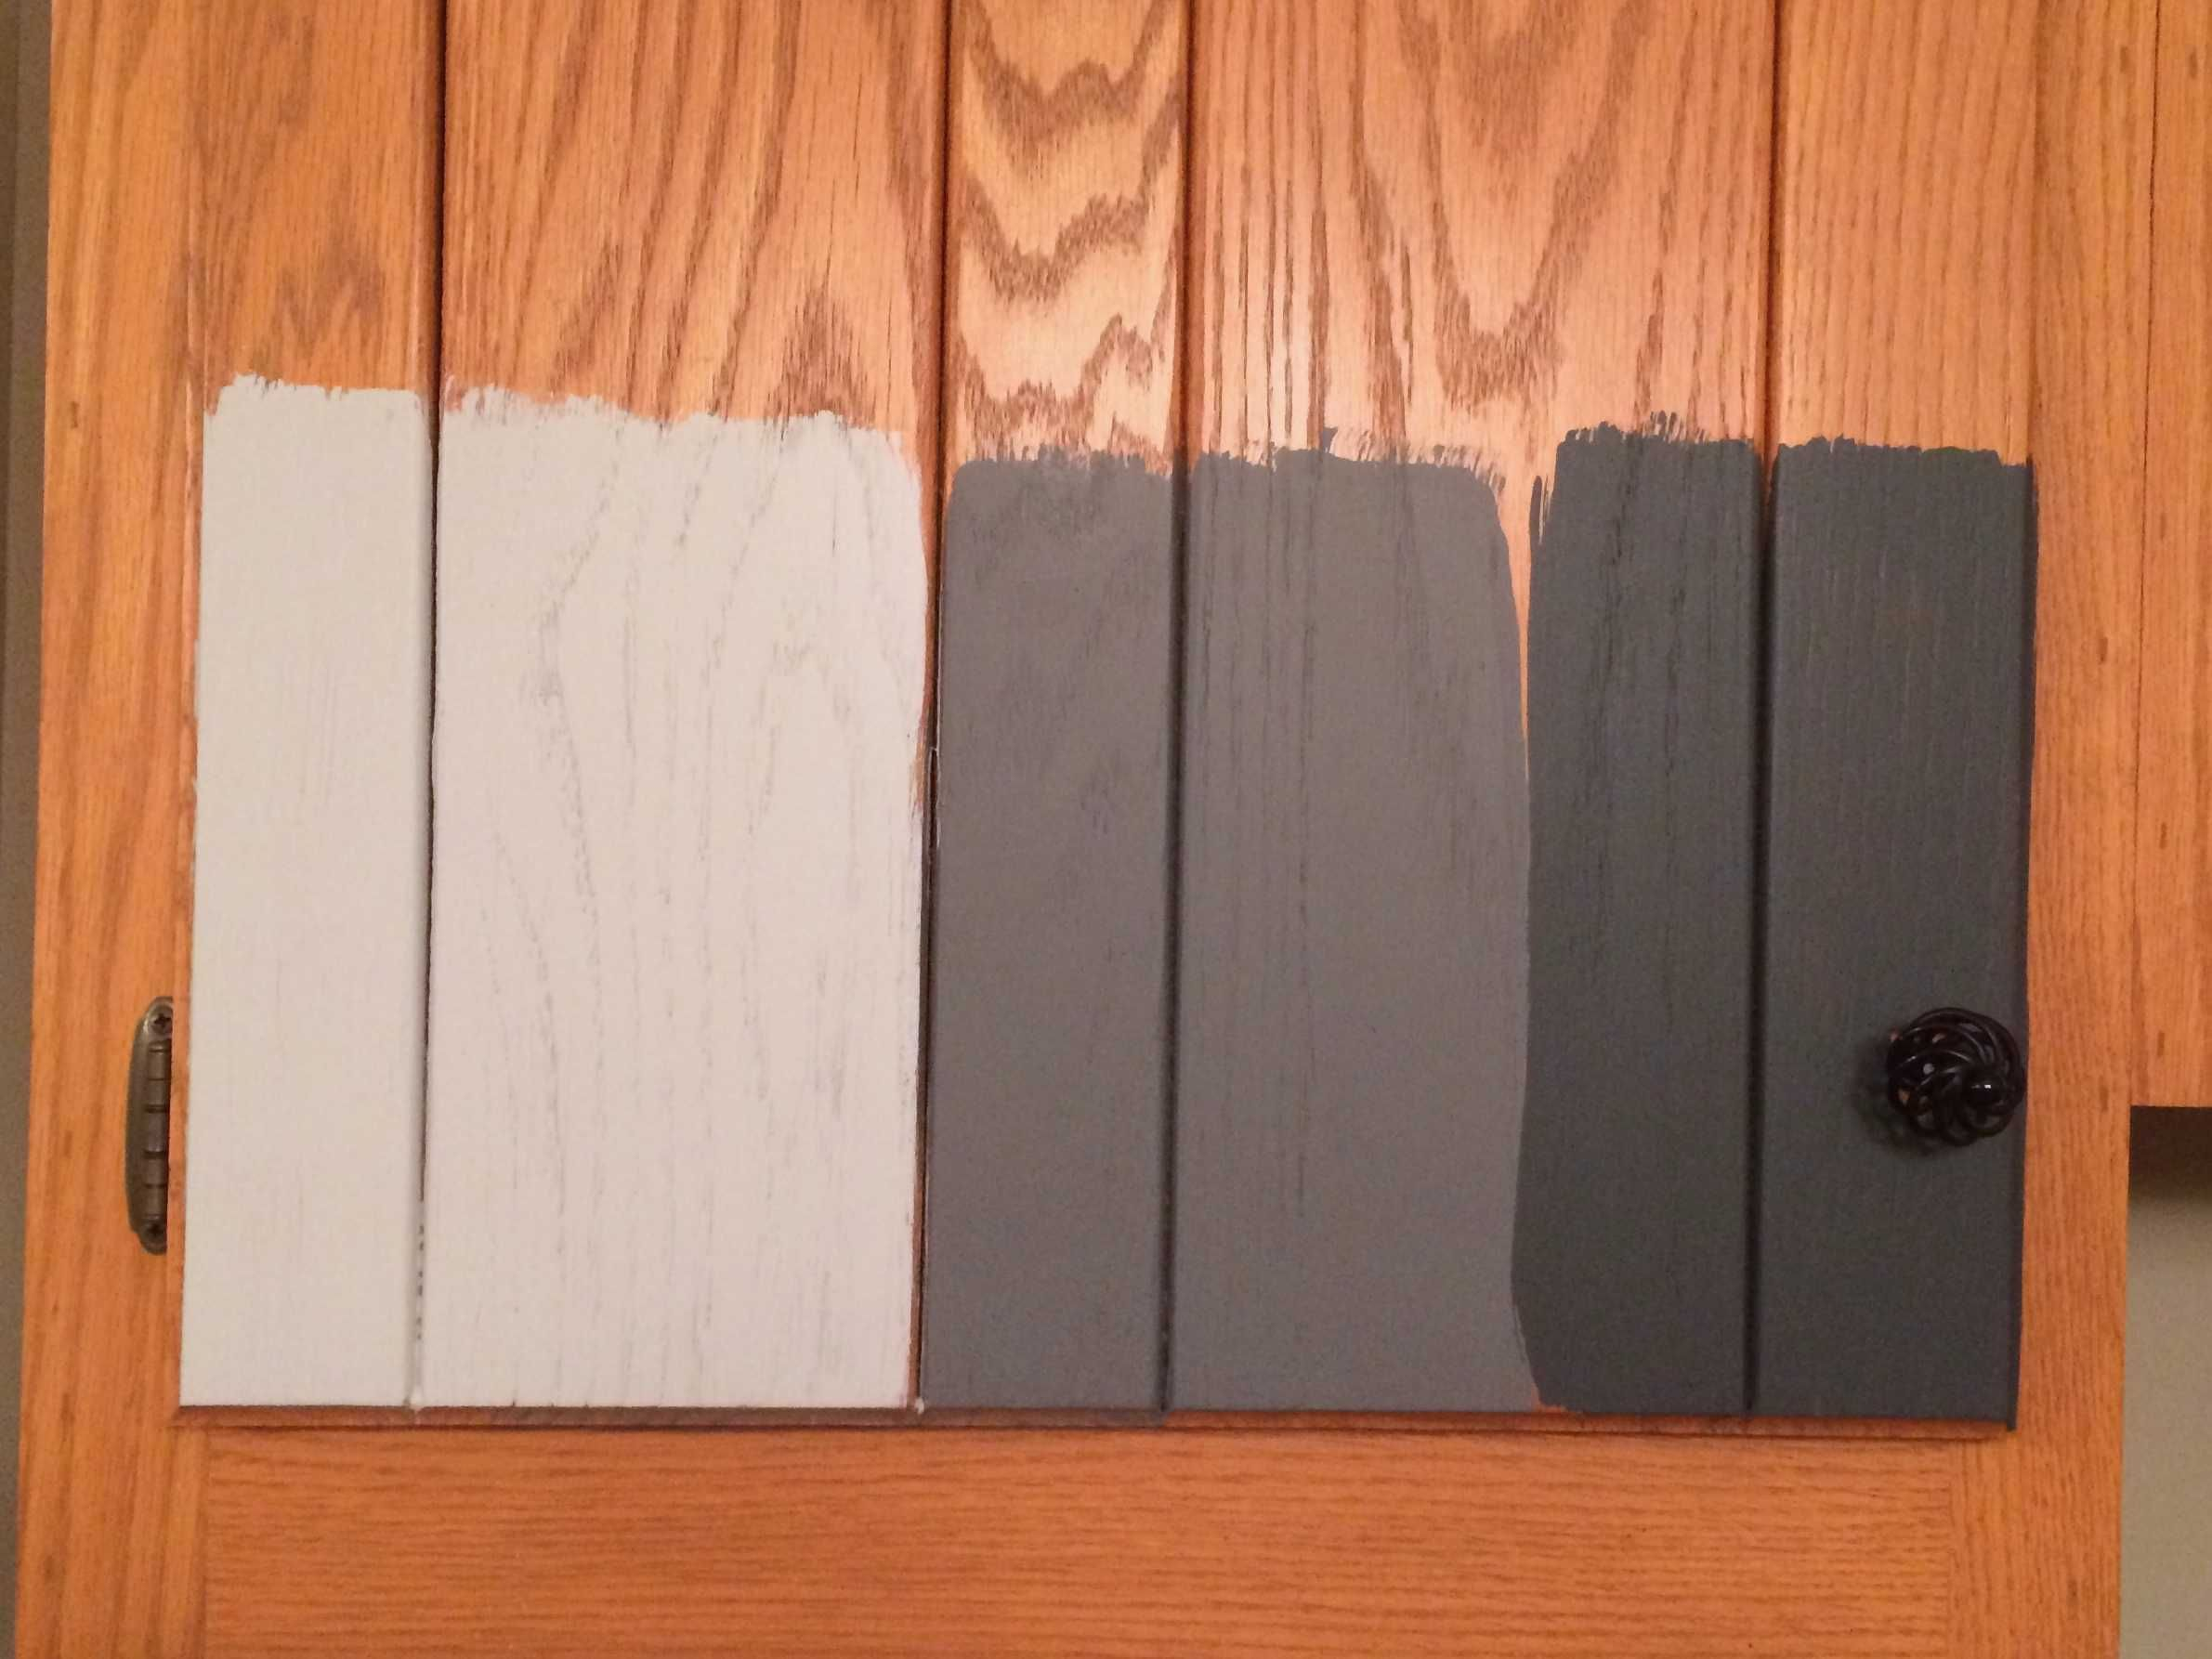 remodel kitchen cabinets How to Paint Kitchen Cabinets without sanding or priming